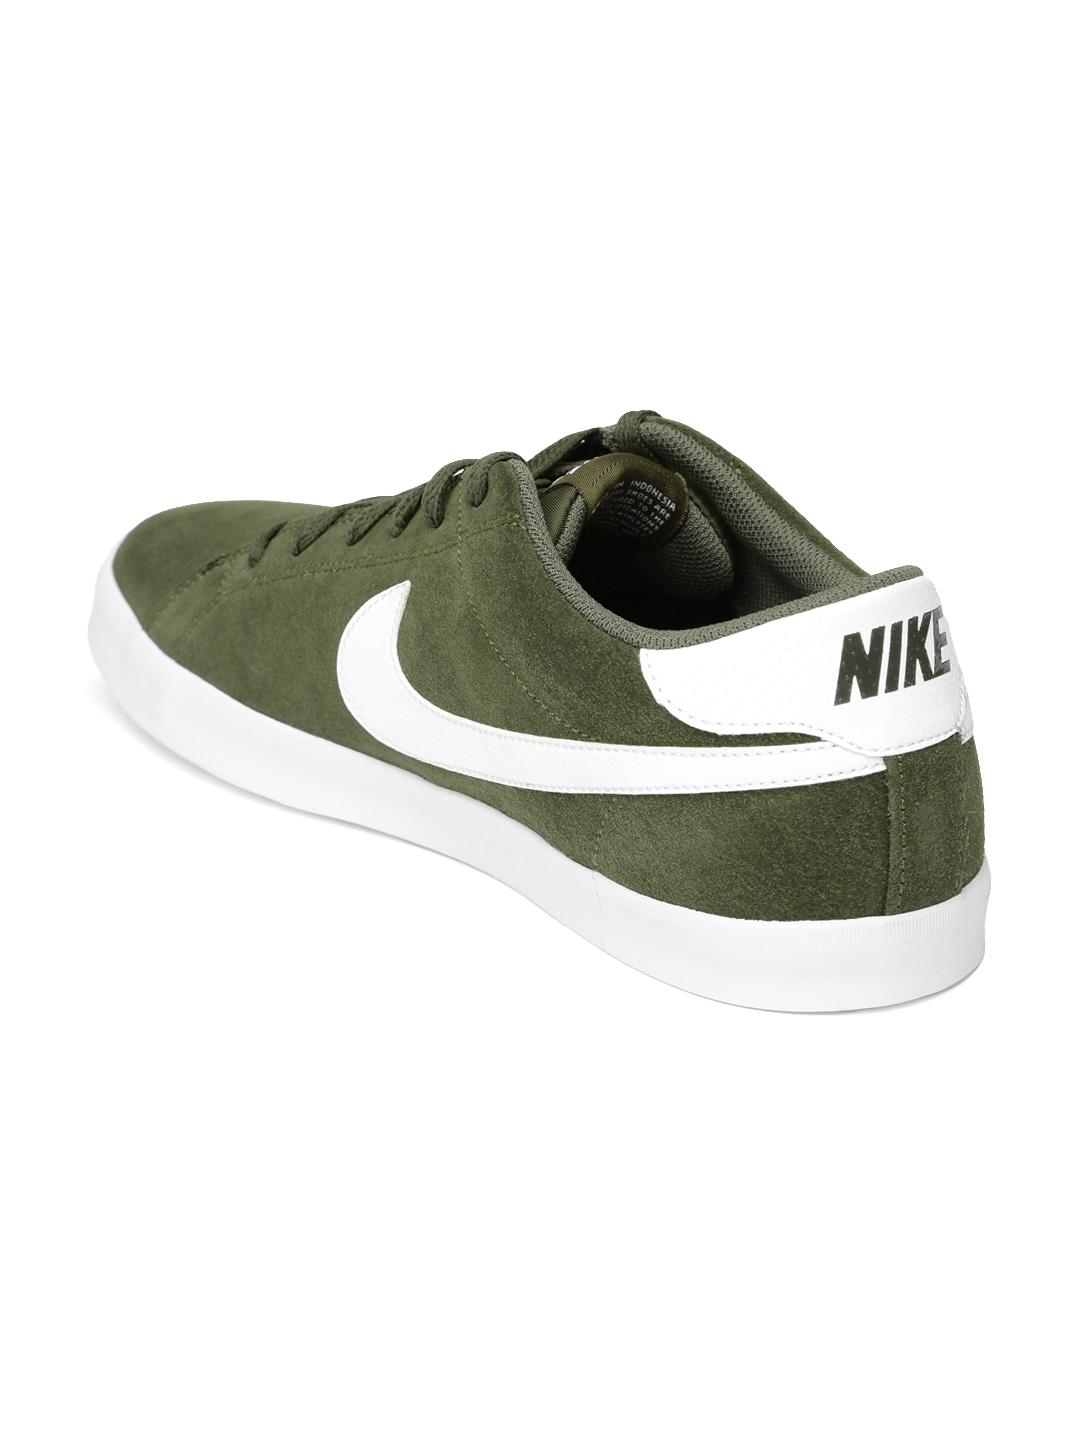 Buy Nike Men Olive Green Eastham Suede Sneakers - Casual Shoes for ... 19533b8eb